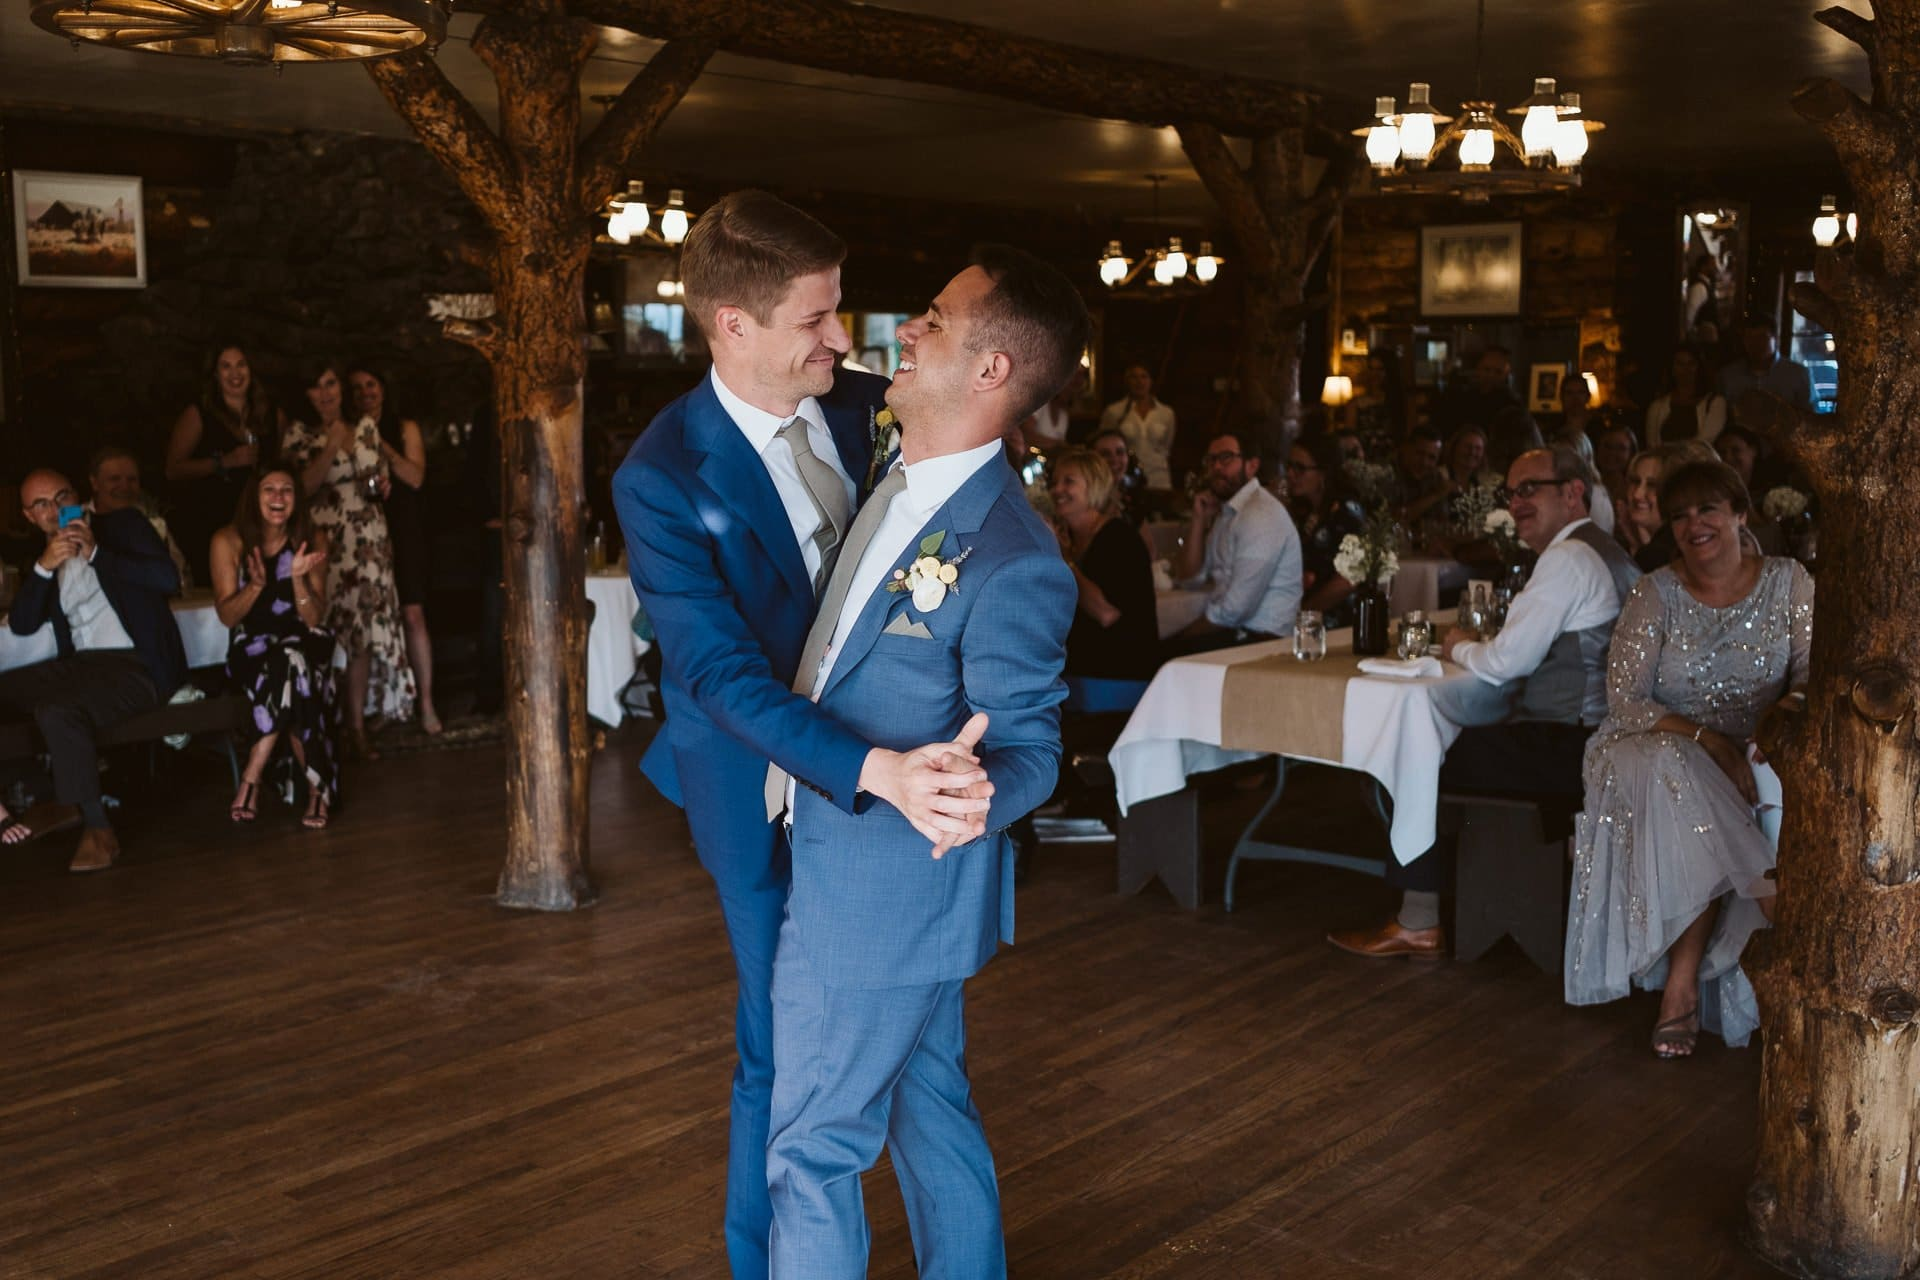 Grooms share first dance at Colorado Mountain Ranch wedding in Boulder